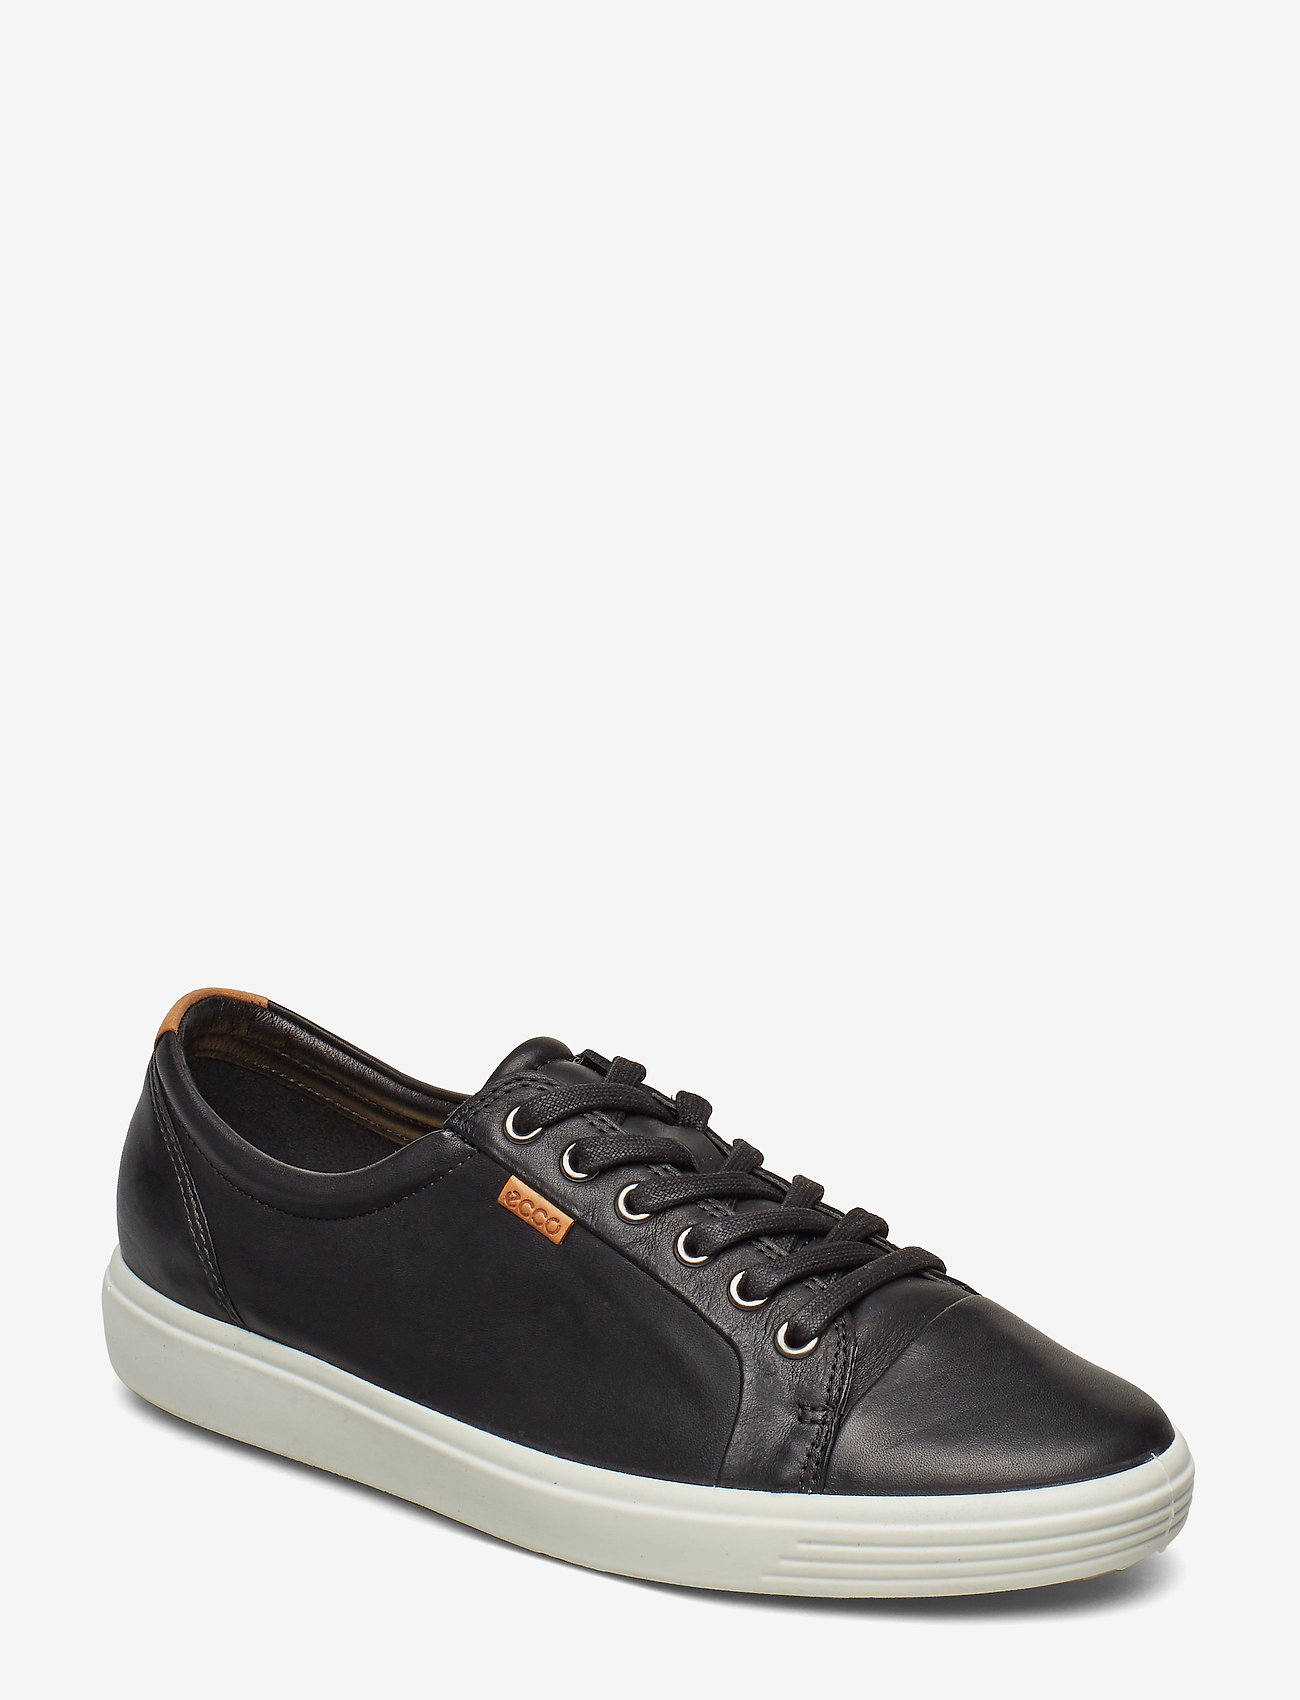 ECCO - SOFT 7 W - niedrige sneakers - black - 0